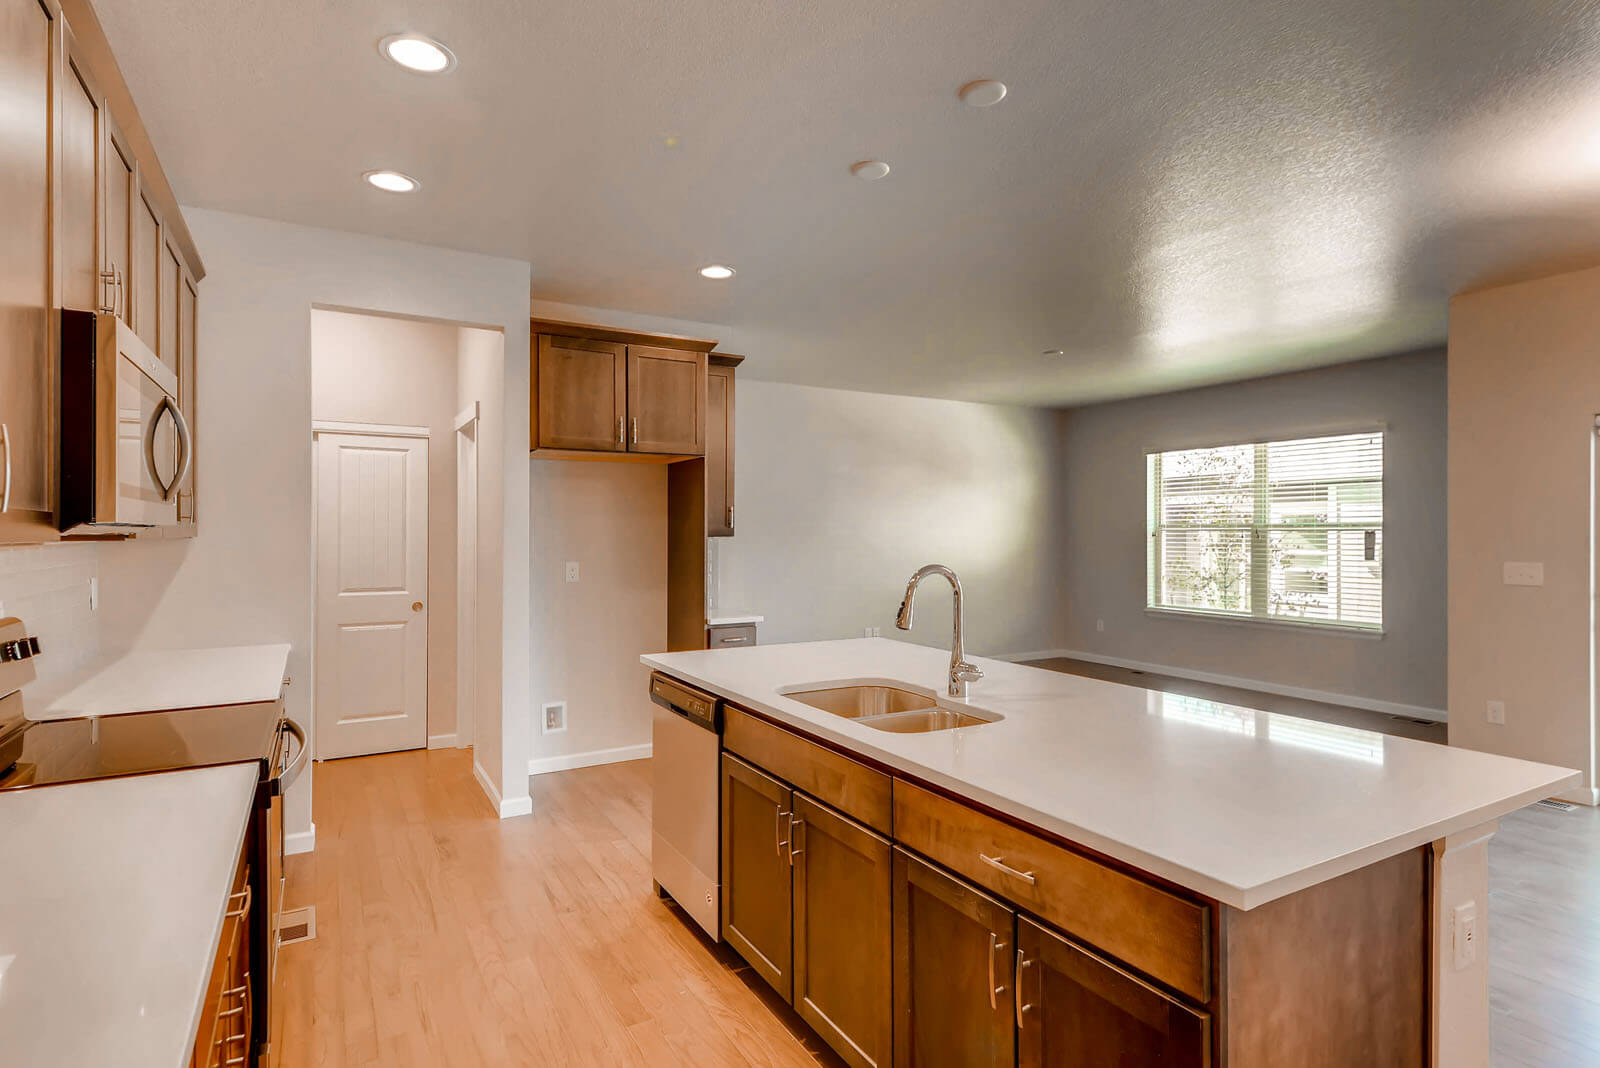 New Denver Single Family Home Quick Possession <b></b>Willow in Lincoln Creek, located at 11896 Barrentine loop, Parker Built By Cardel Homes Denver